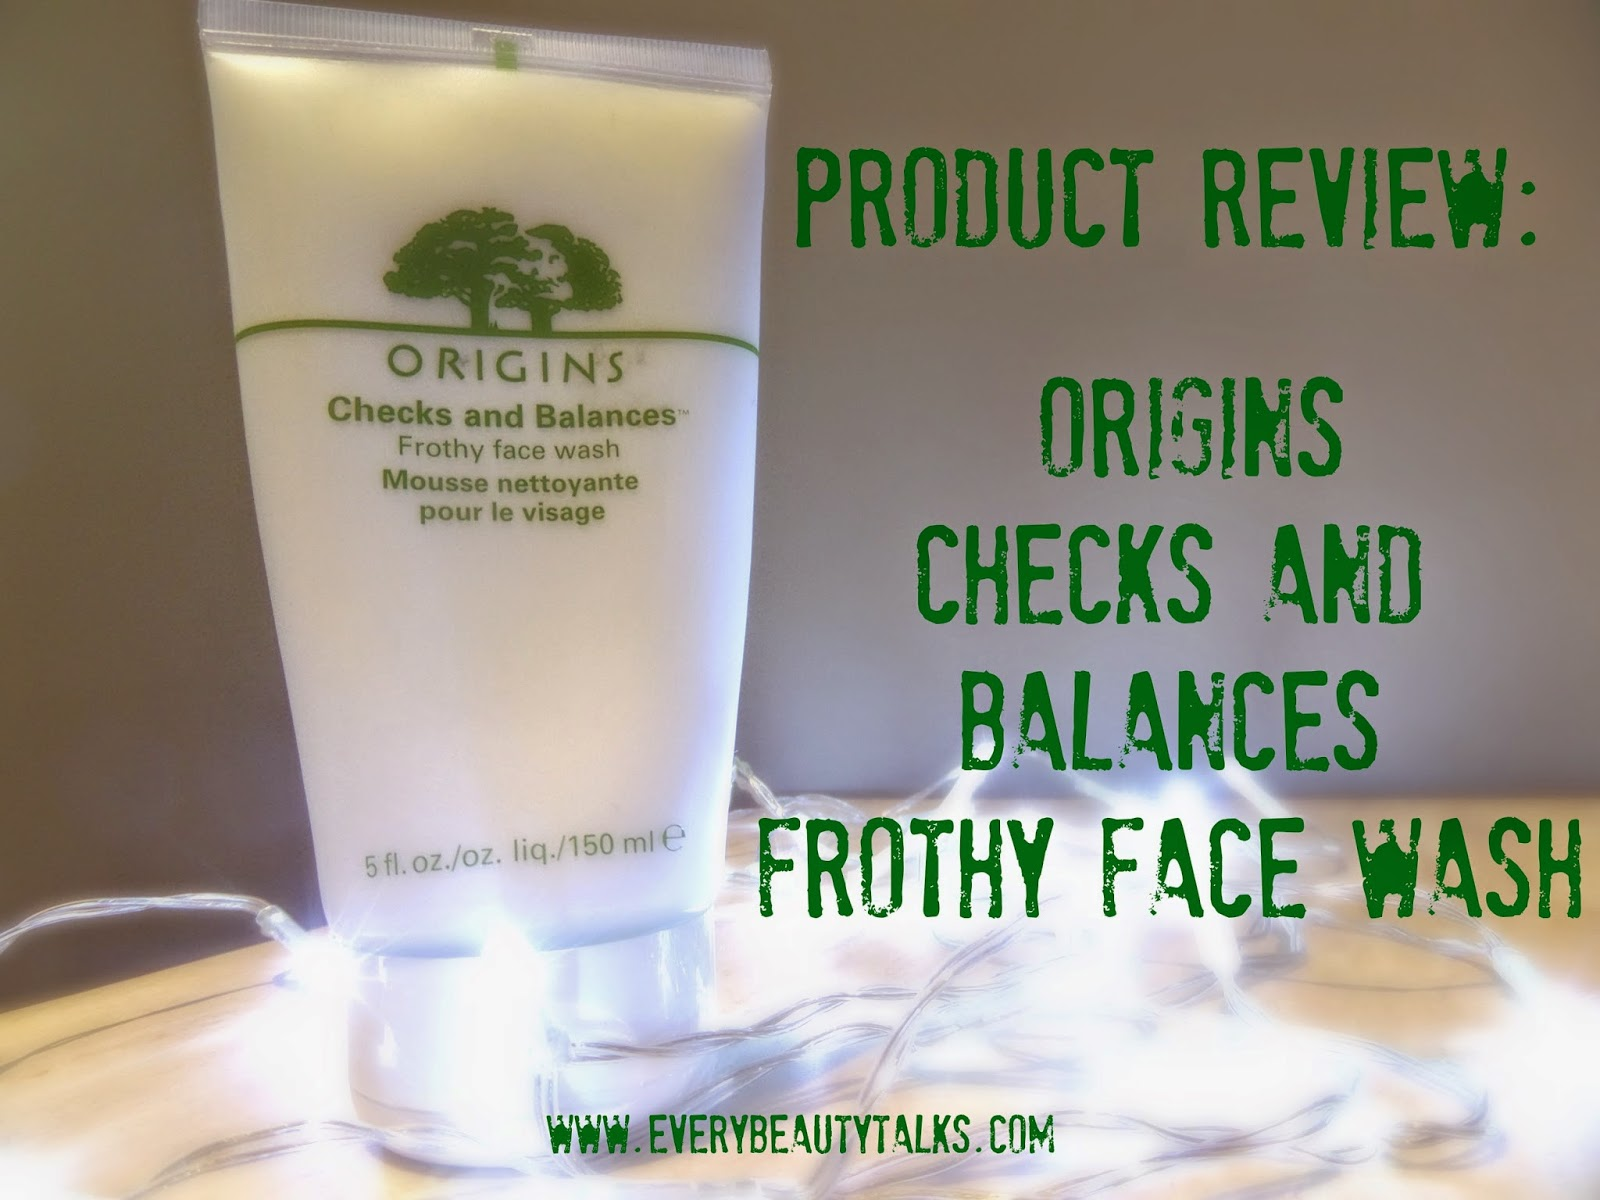 Checks And Balances Frothy Face Wash by origins #12